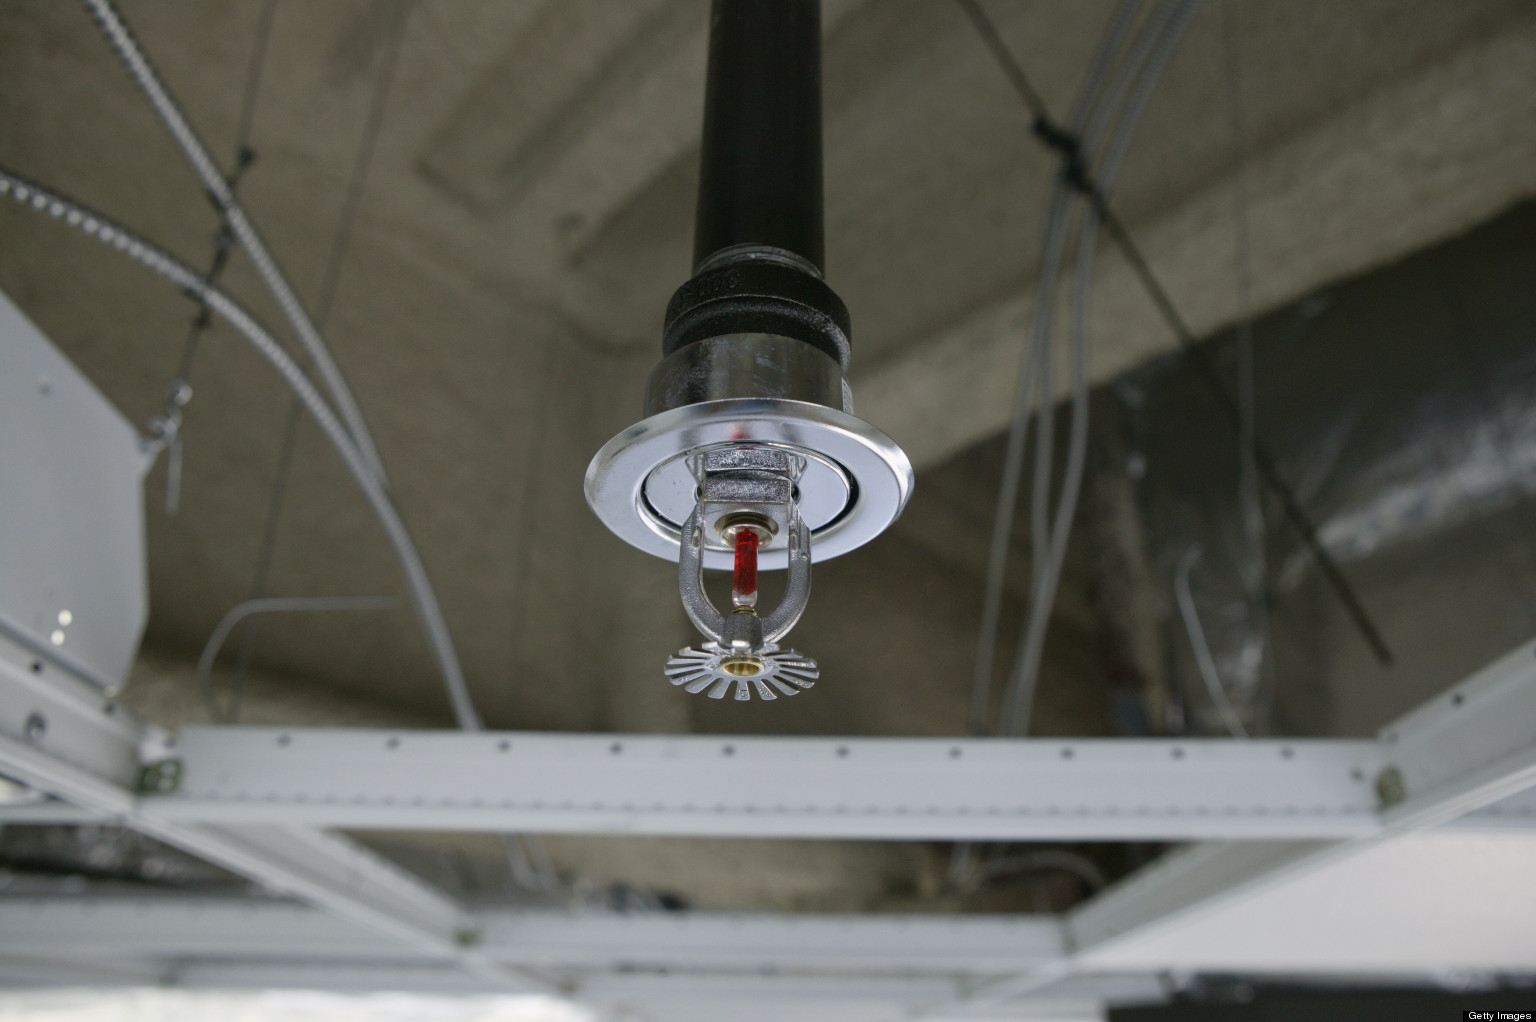 Illinois Fire Sprinkler Law: State Could Require Sprinkler System ...